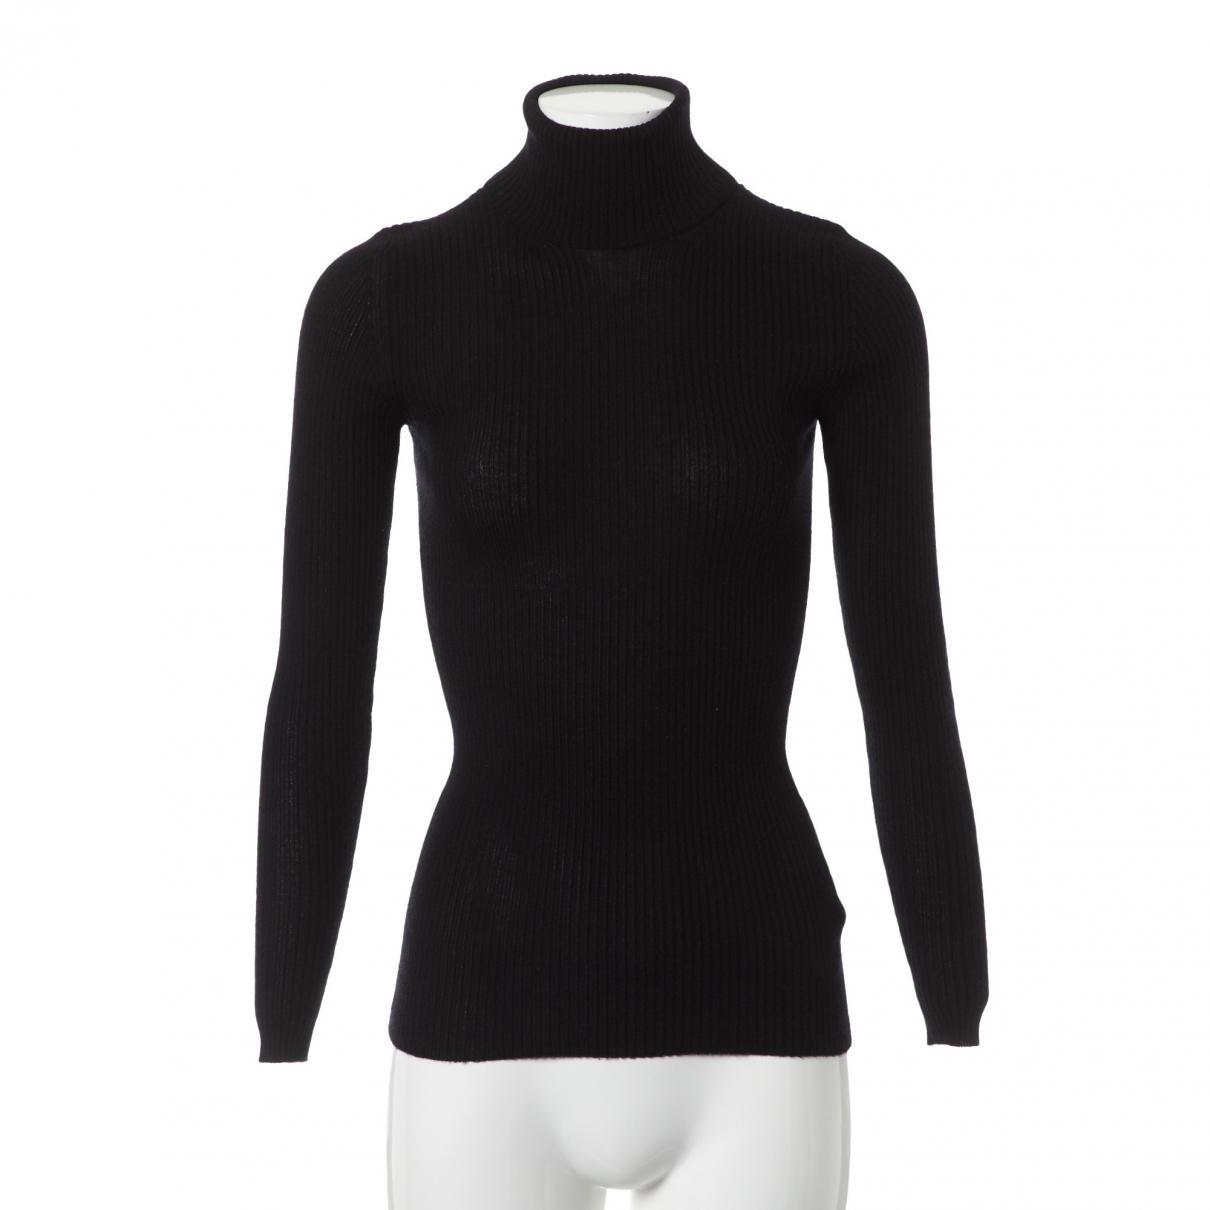 Gucci \N Black Cashmere Knitwear for Women S International